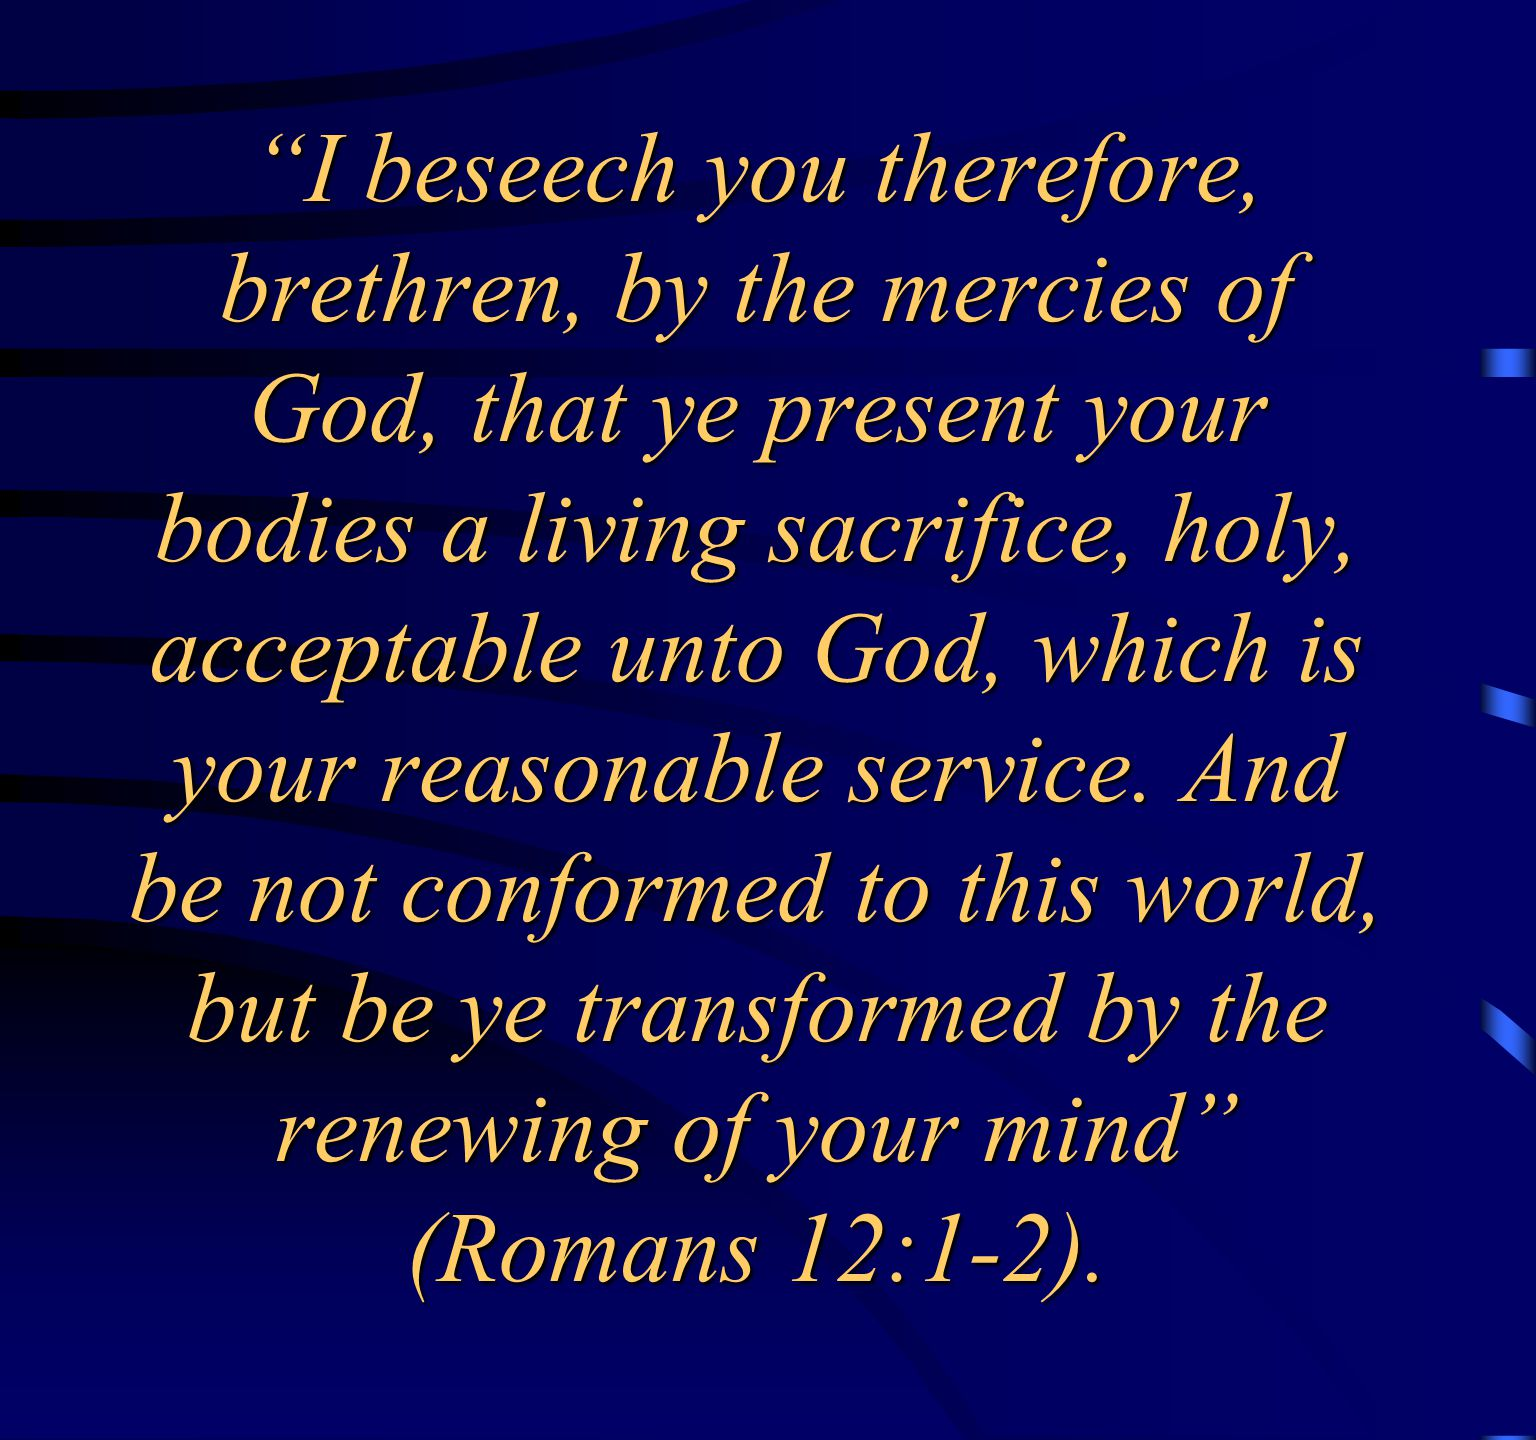 I beseech you therefore, brethren, by the mercies of God, that ye present your bodies a living sacrifice, holy, acceptable unto God, which is your reasonable service.